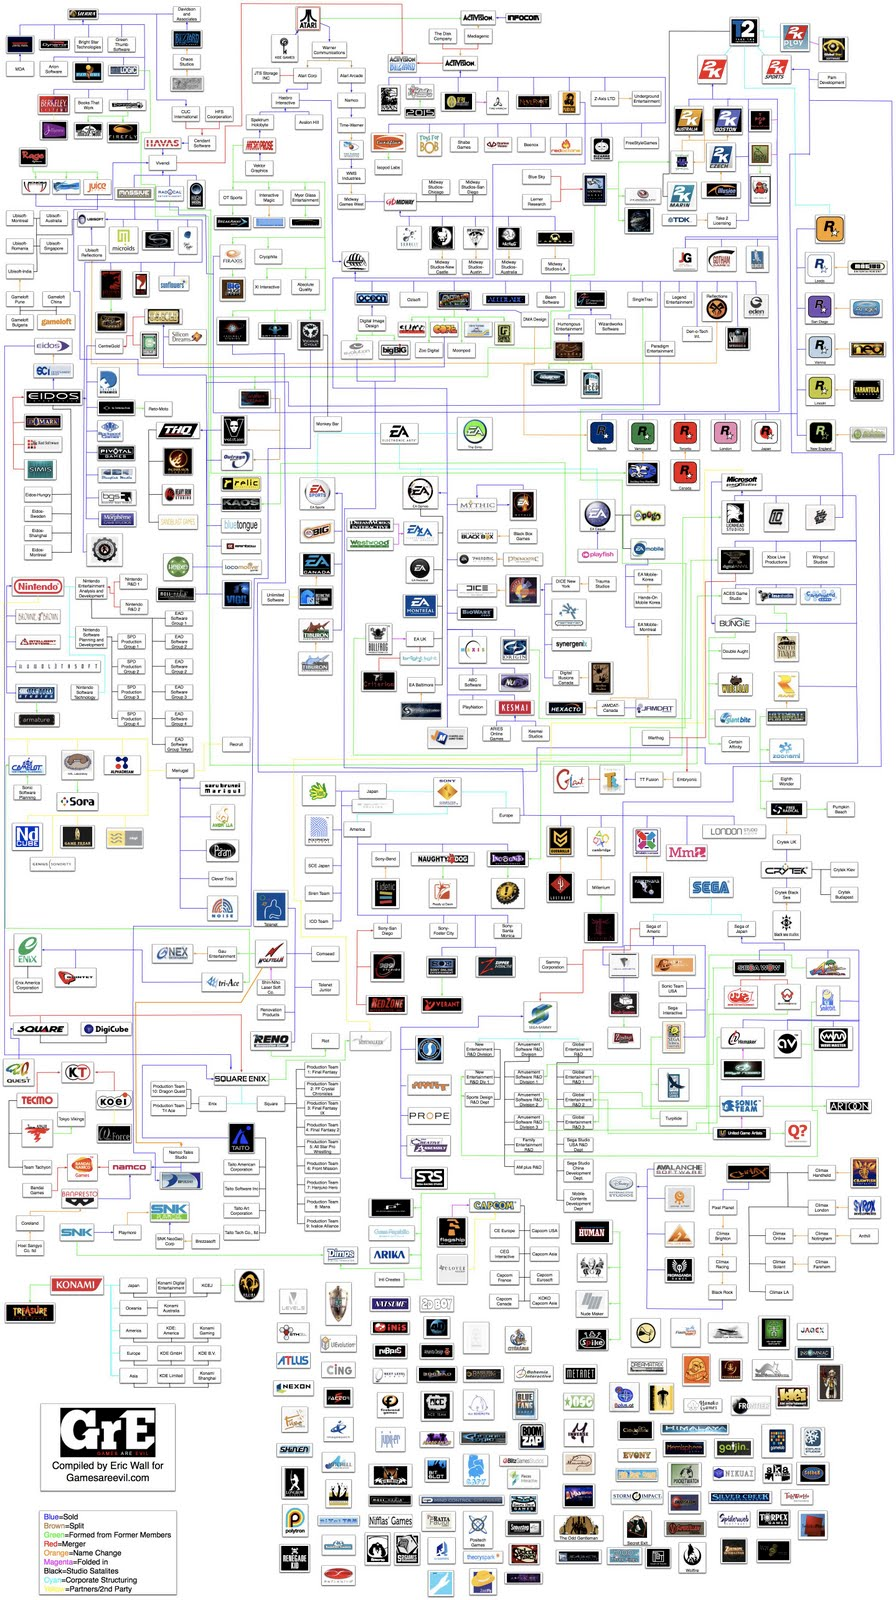 http://4.bp.blogspot.com/_JGgzOkYhIb0/S62Iqv8yApI/AAAAAAAAEMk/PbMqGP-UkYw/s1600/History-of-Video-Game-Development-Studios-Flow-Chart-2.jpg